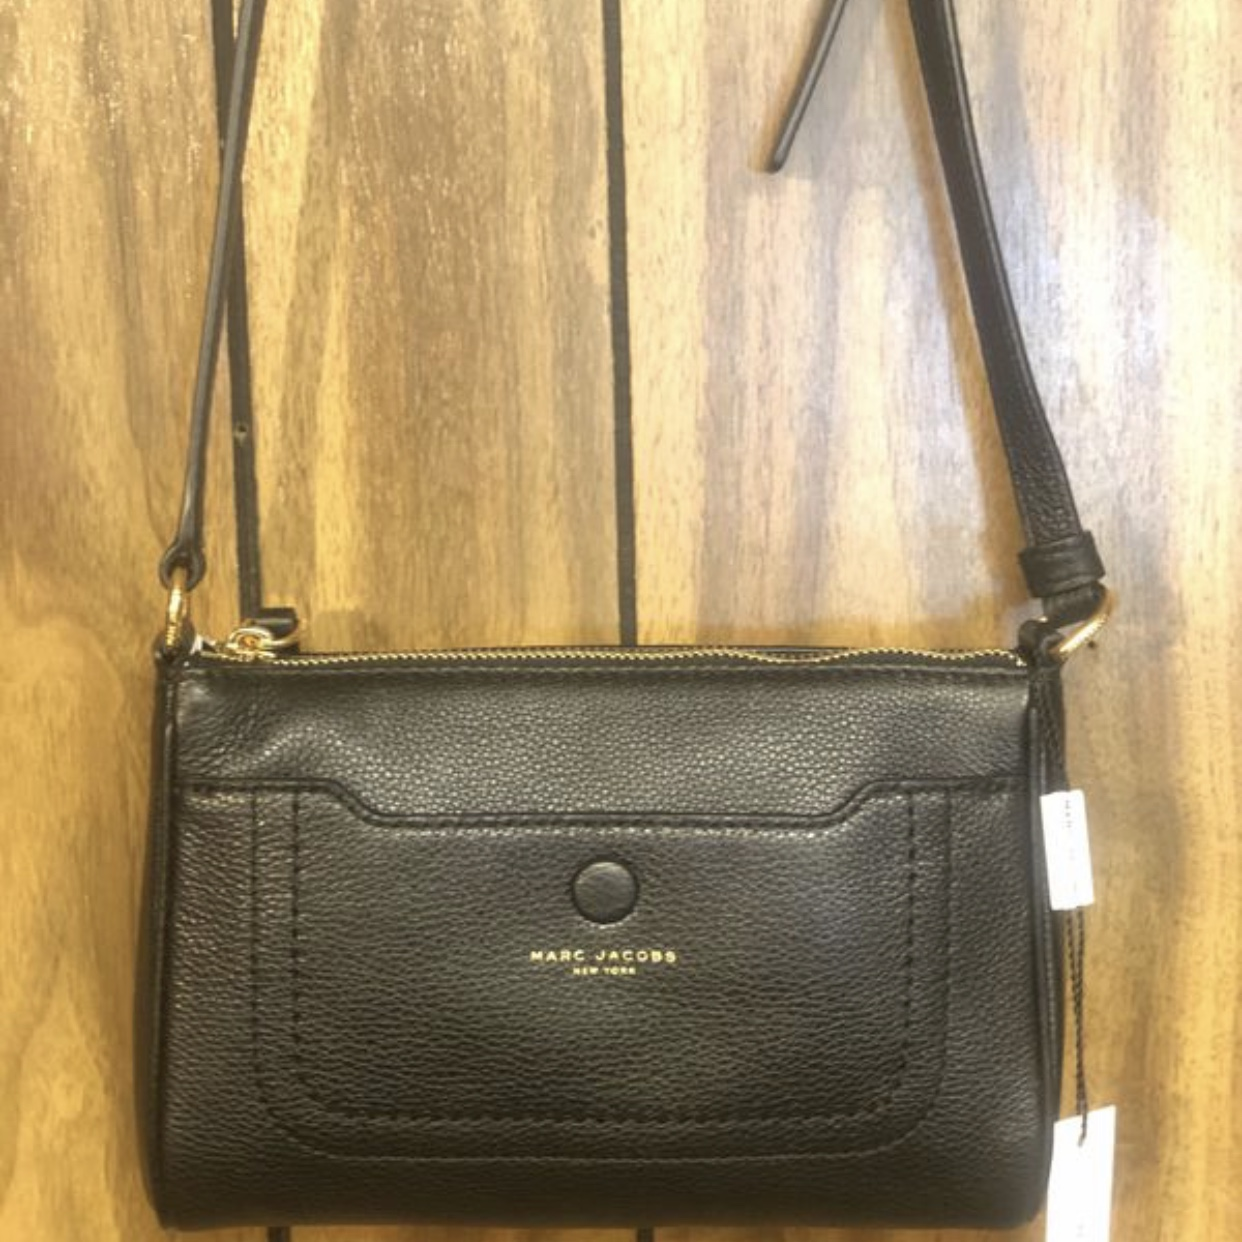 Buy Authentic sale usa online 60% clearance Marc Jacobs Empire City Leather Crossbody Bag... - Depop